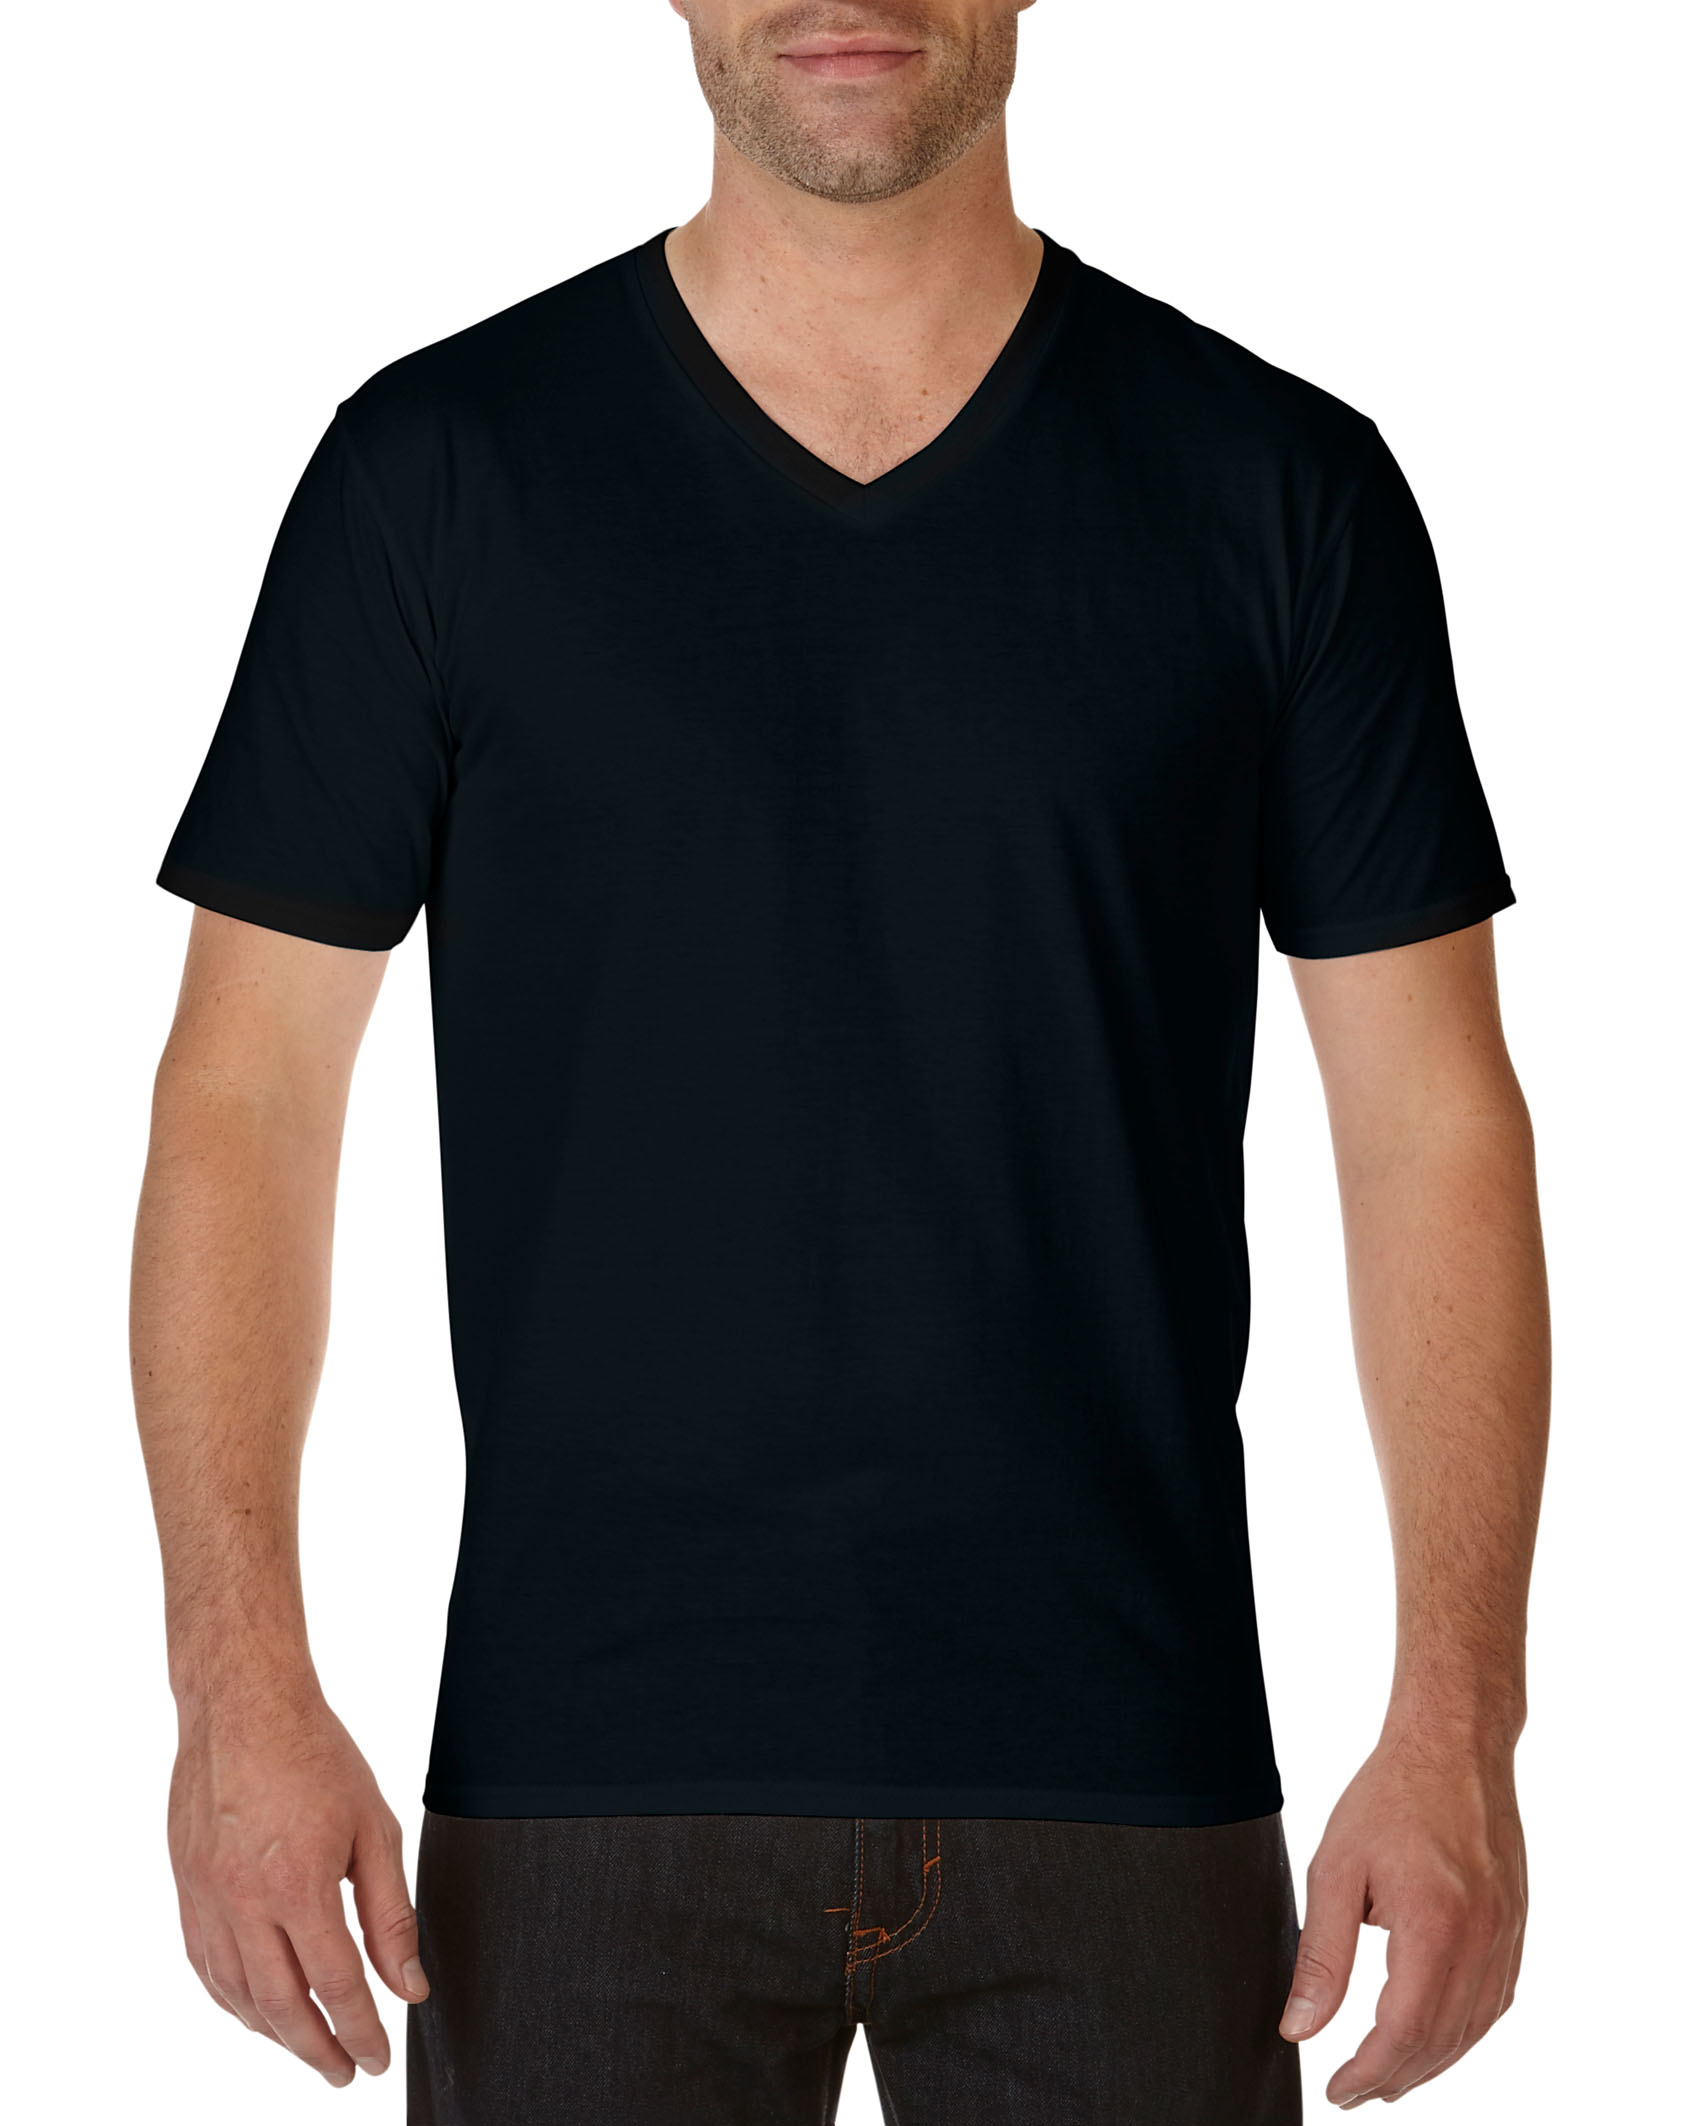 Gildan T-shirt Premium Cotton V-Neck SS for him